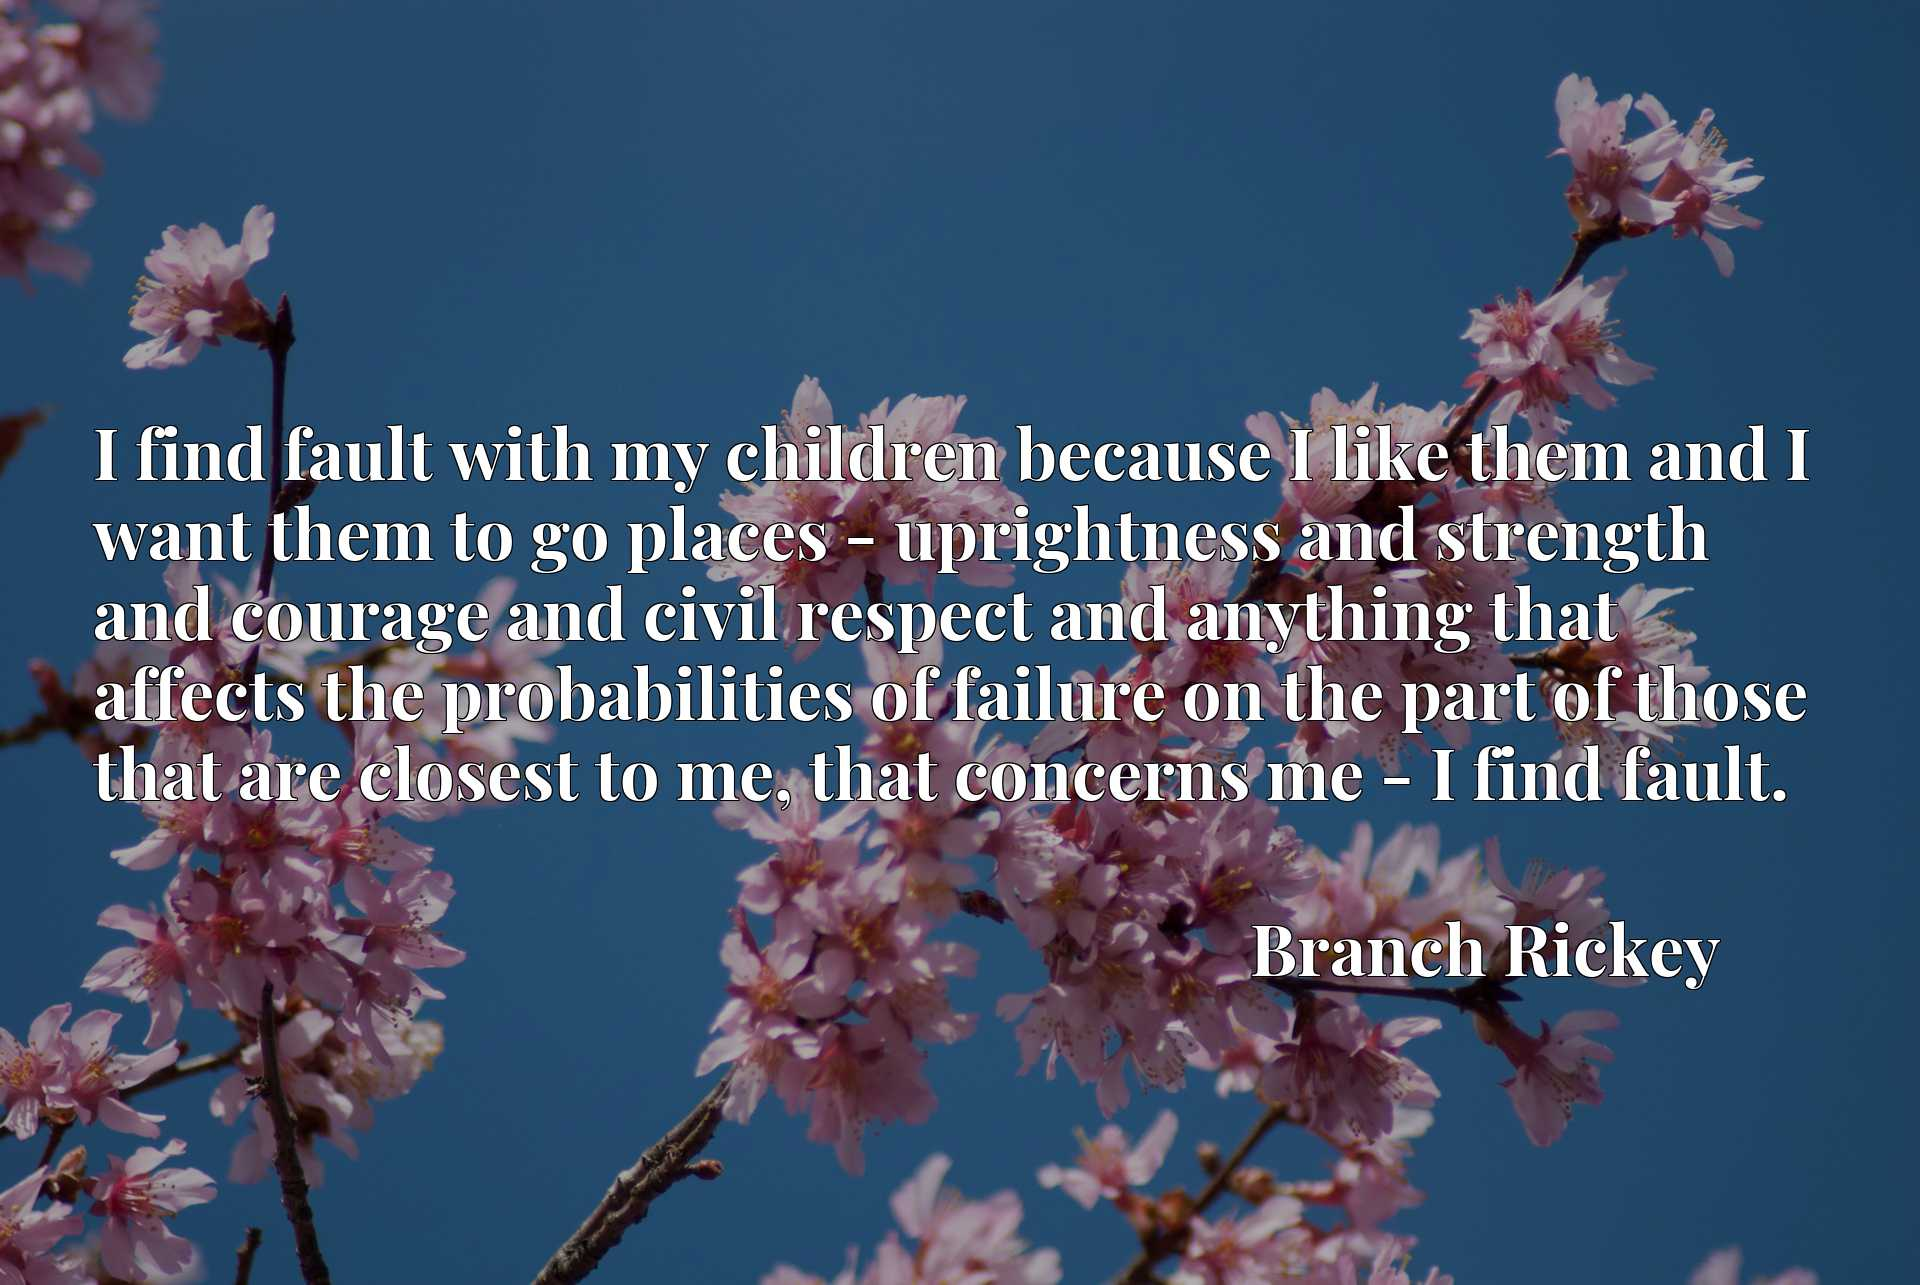 I find fault with my children because I like them and I want them to go places - uprightness and strength and courage and civil respect and anything that affects the probabilities of failure on the part of those that are closest to me, that concerns me - I find fault.